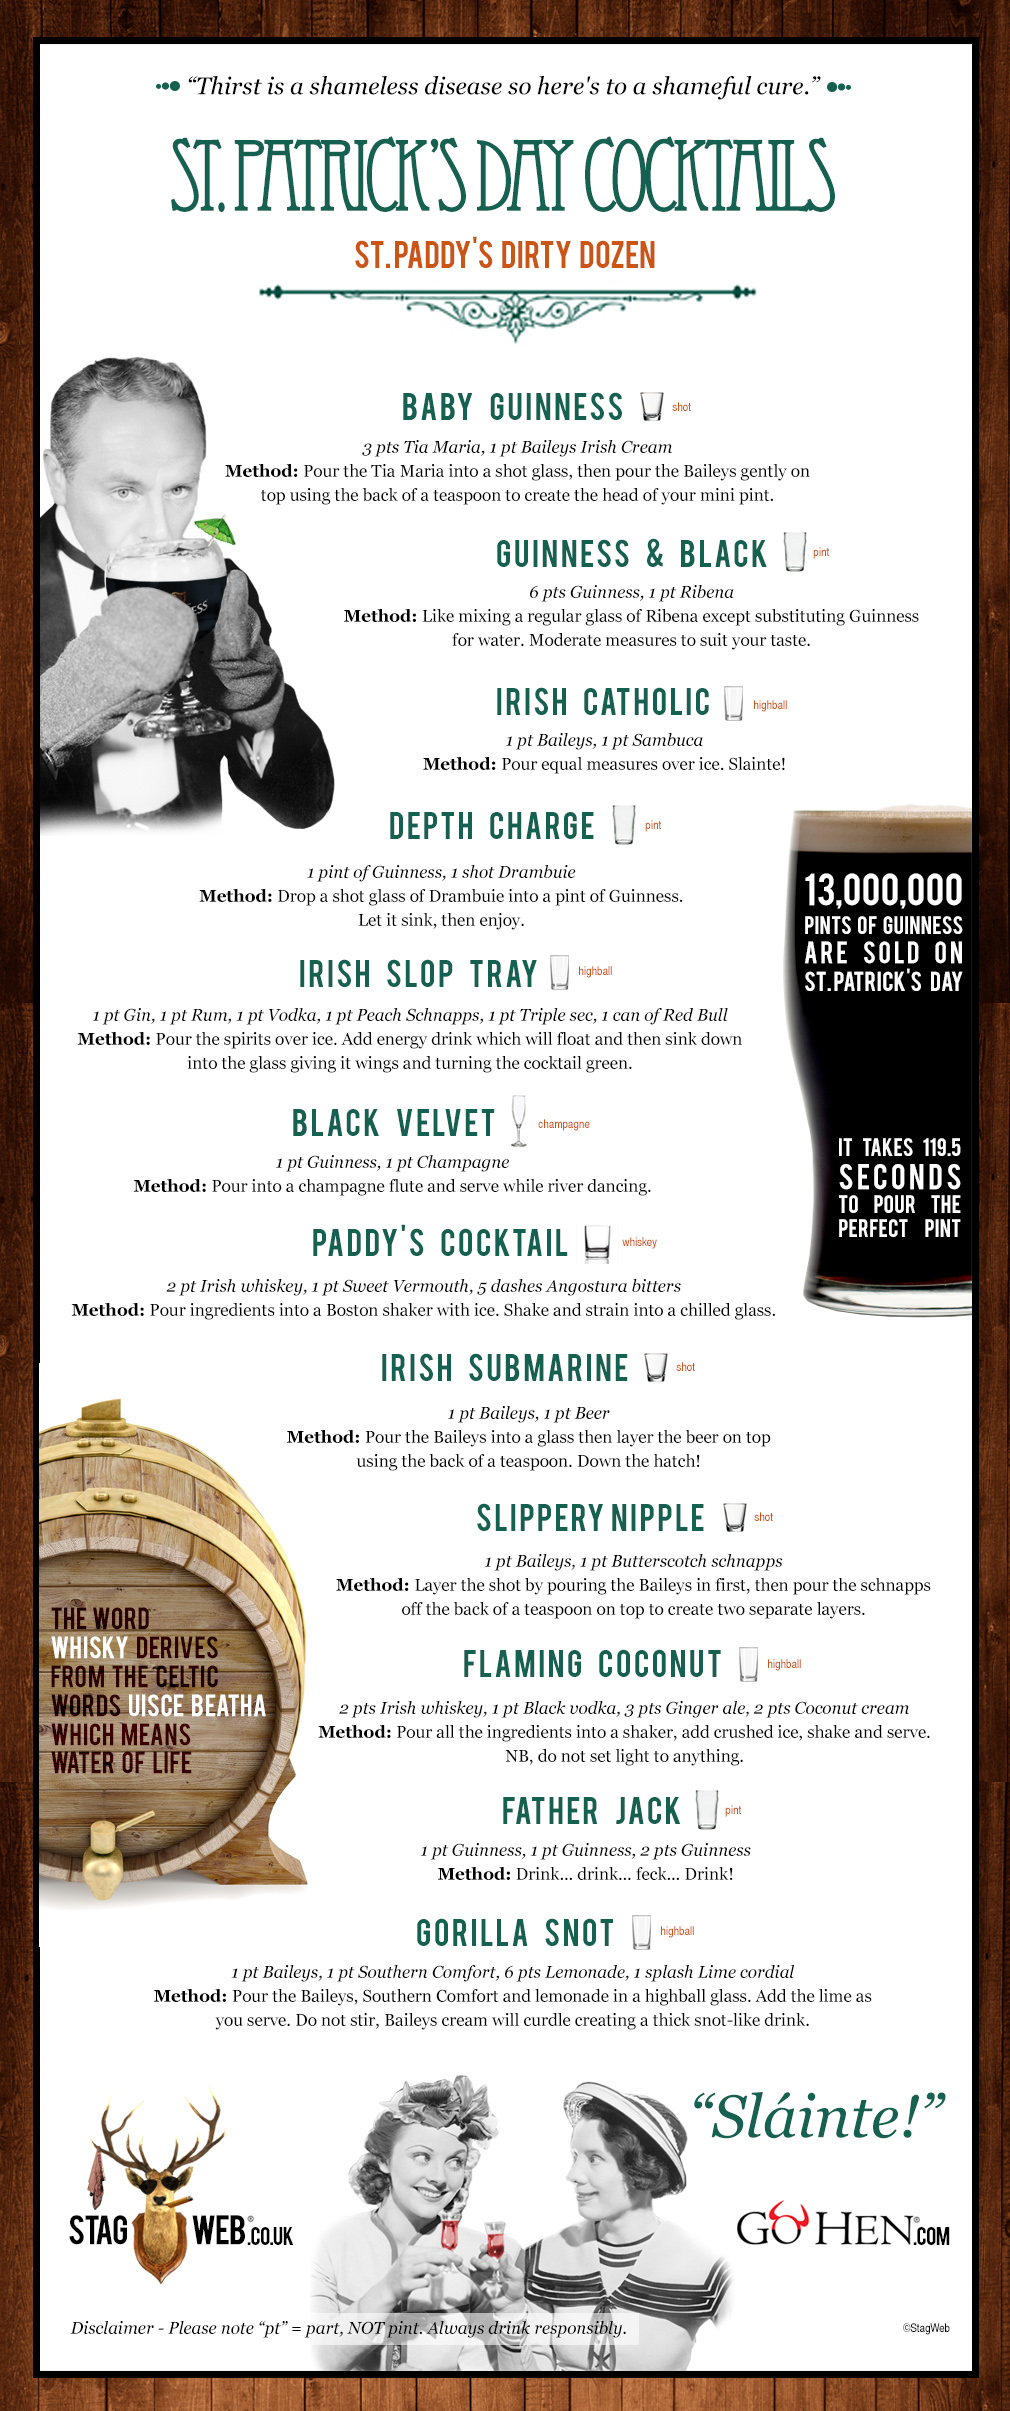 St. Patricks day cocktail infographic